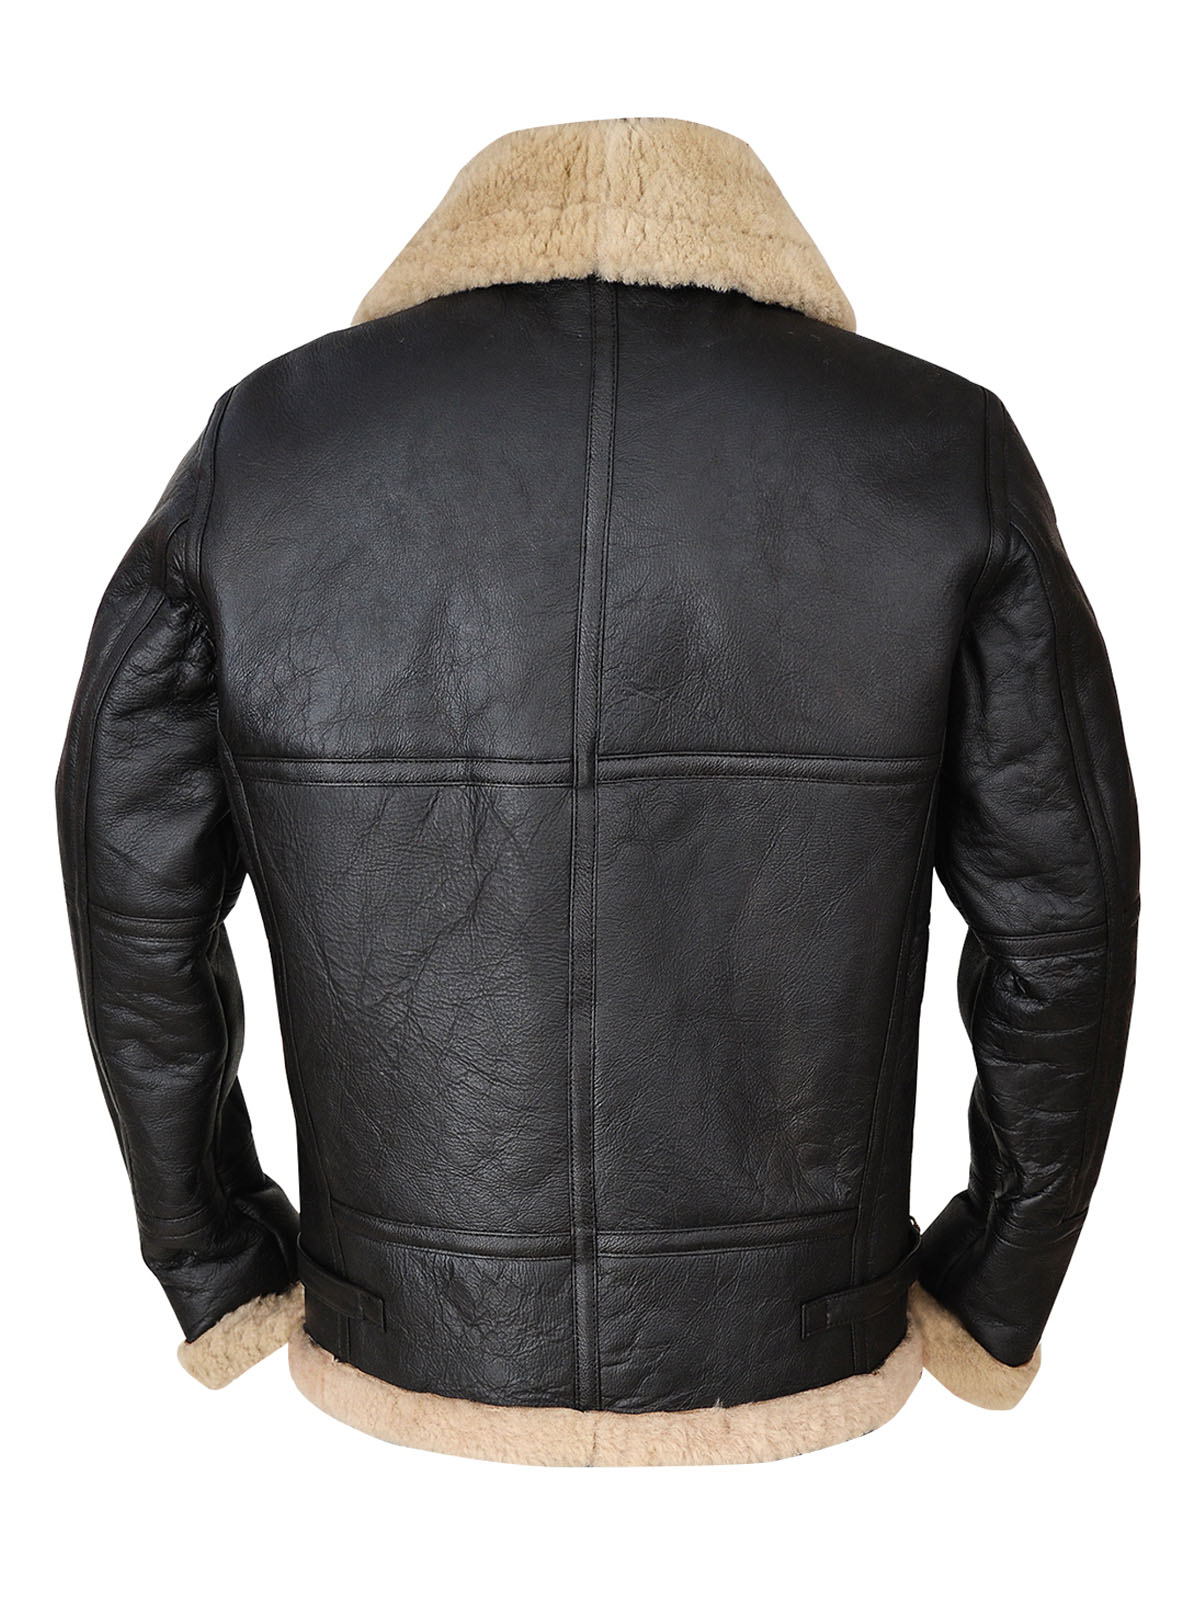 Men's black B3 bomber aviator shearling leather jacket